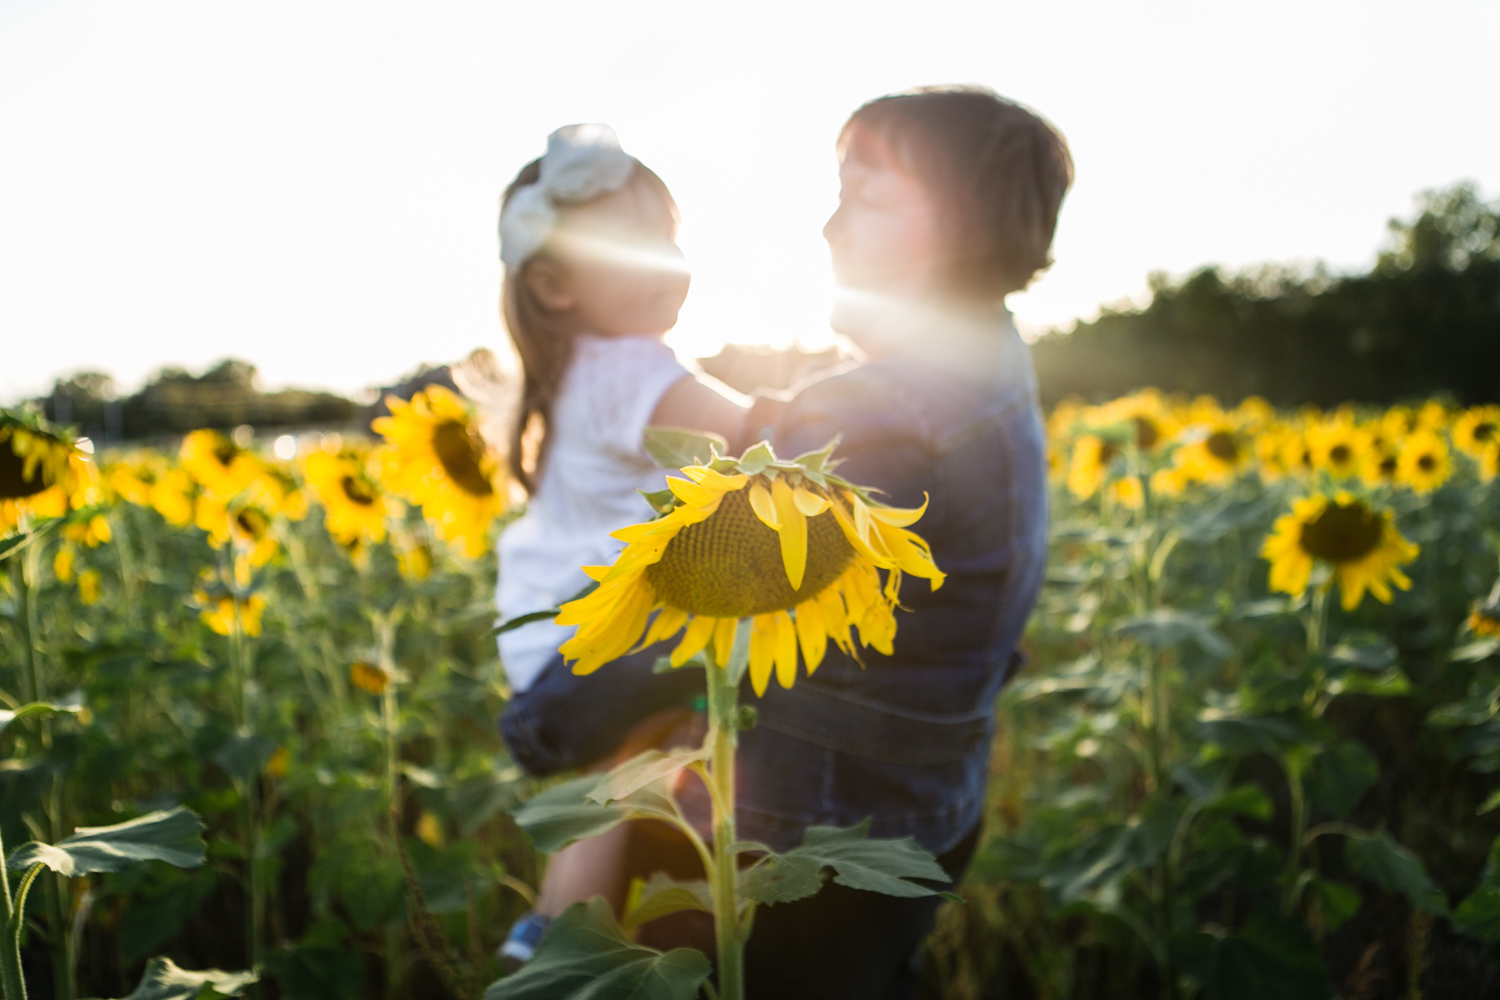 Fall Family Photos with Grandmother and granddaughter in the sunflower field with lens flare at Britt's Farm and Garden Acres in Manhattan, Kansas. Captured by photographer, Renee McDaniel.